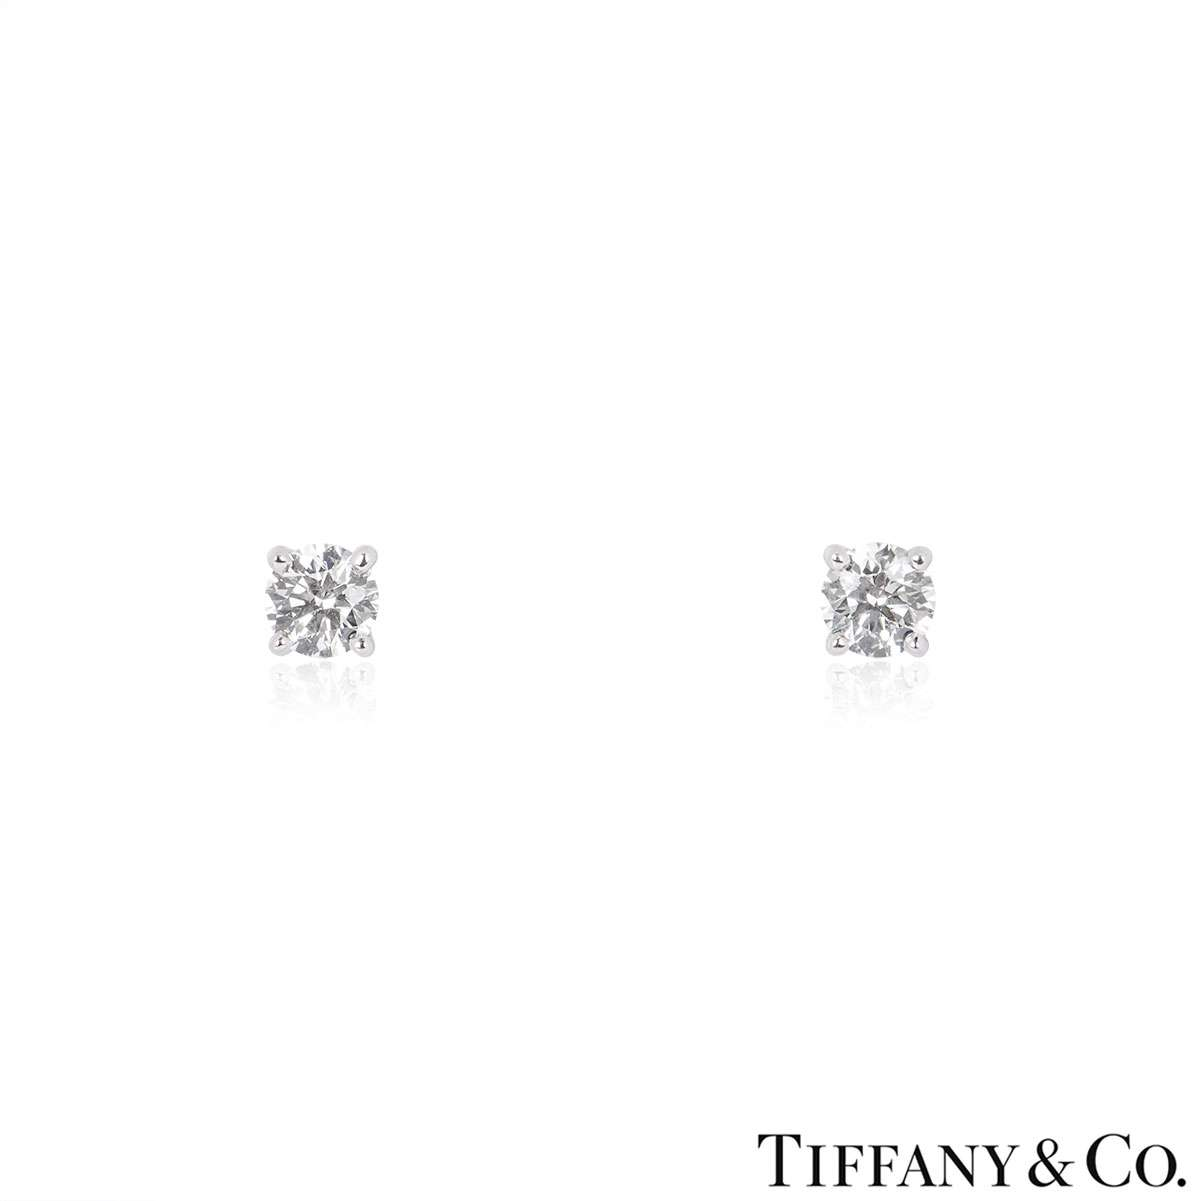 Tiffany & Co. Diamond Ear Studs 0.80ct TDW